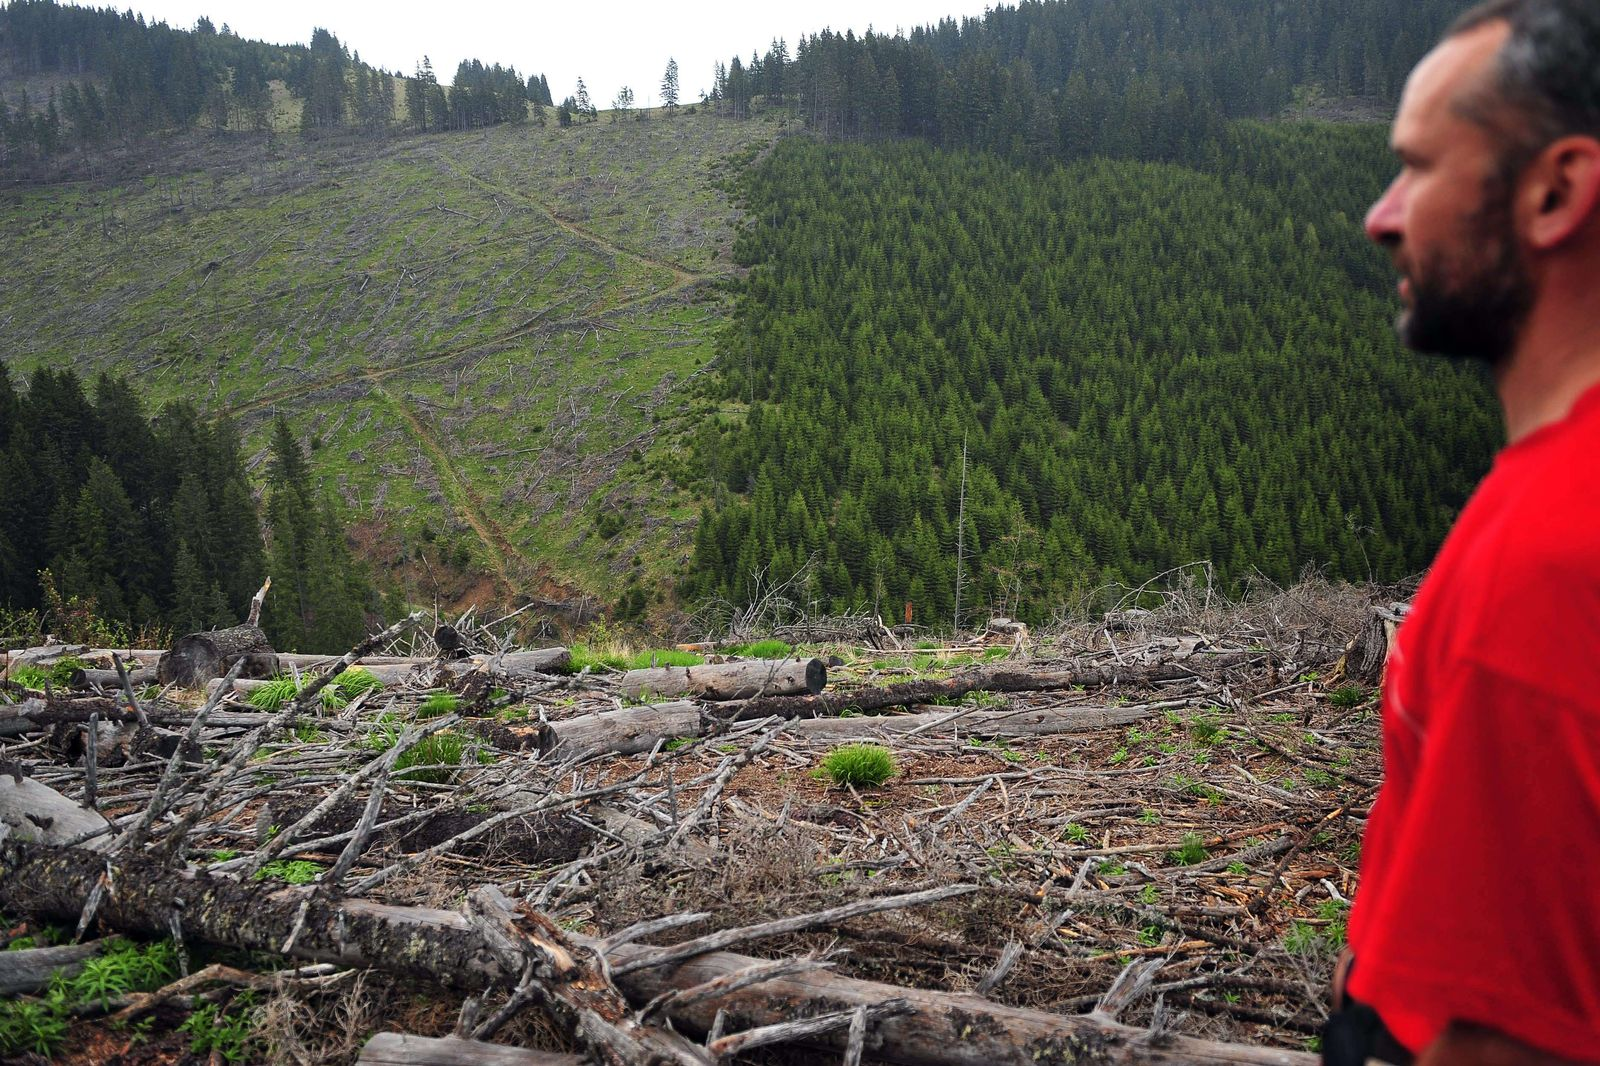 ROMANIA-BALKANS-EEUROPE-FOREST-ENVIRONMENT-FILES